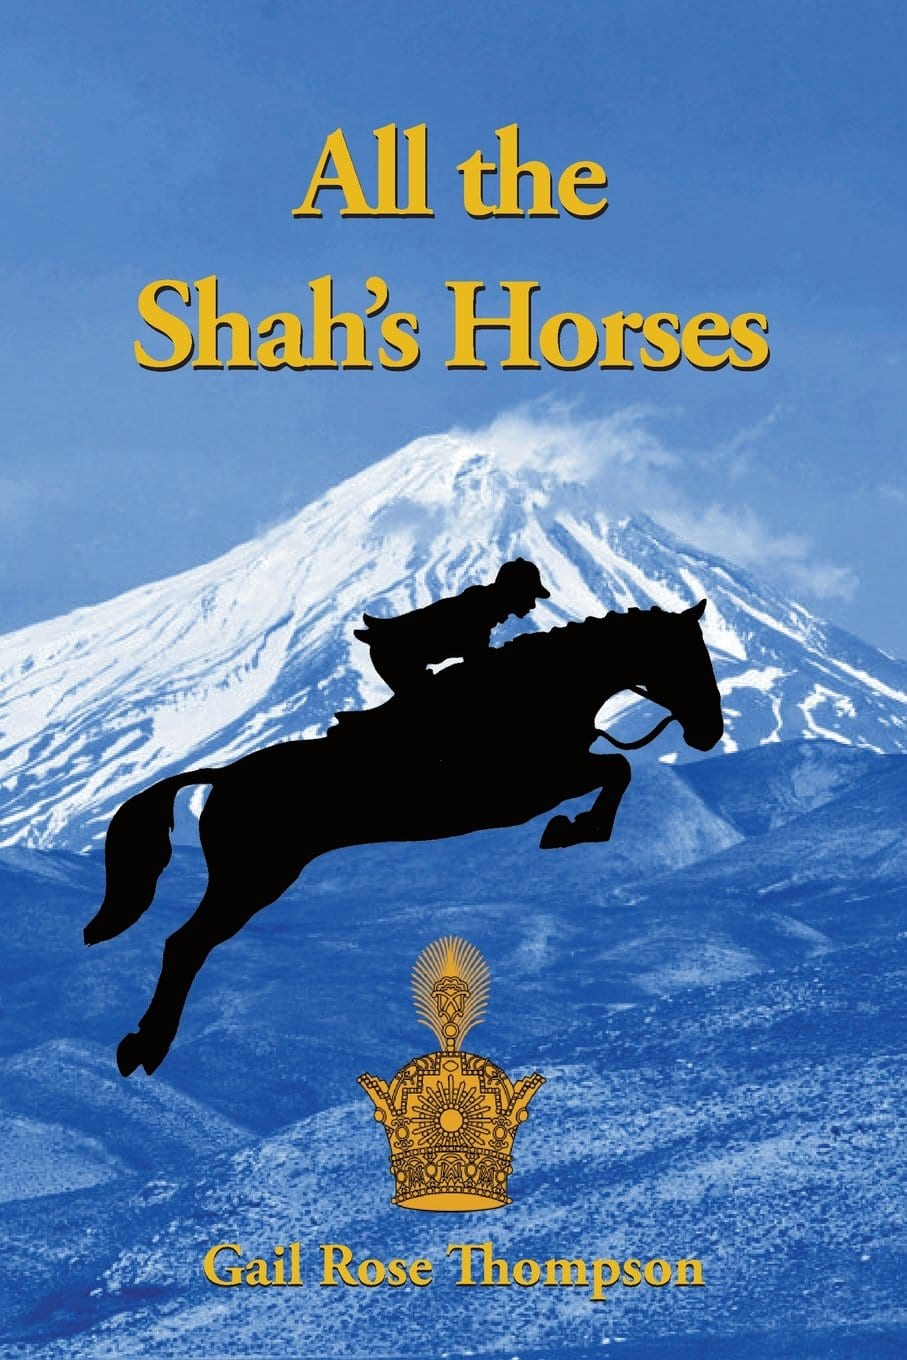 All The Shah's Horses by Gail Rose Thompson (Amazon)